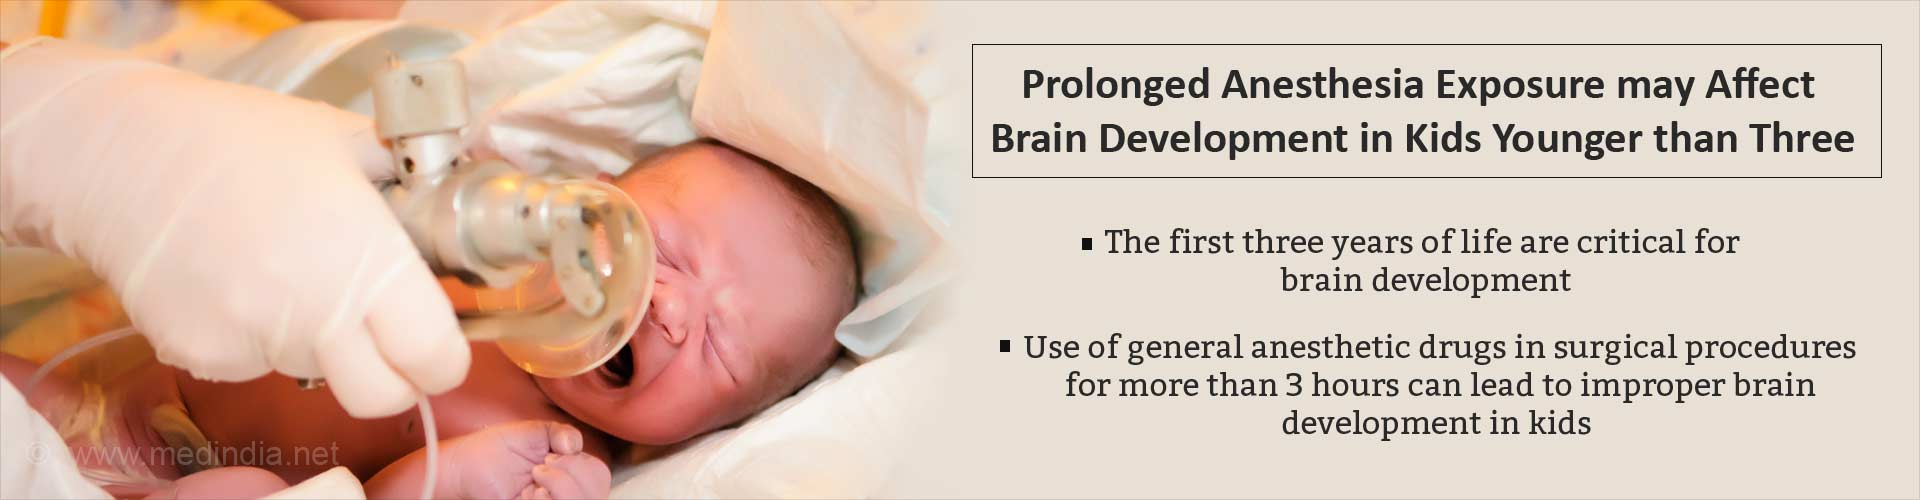 Prolonged anesthesia exposure may affect brain development in kids younger than three